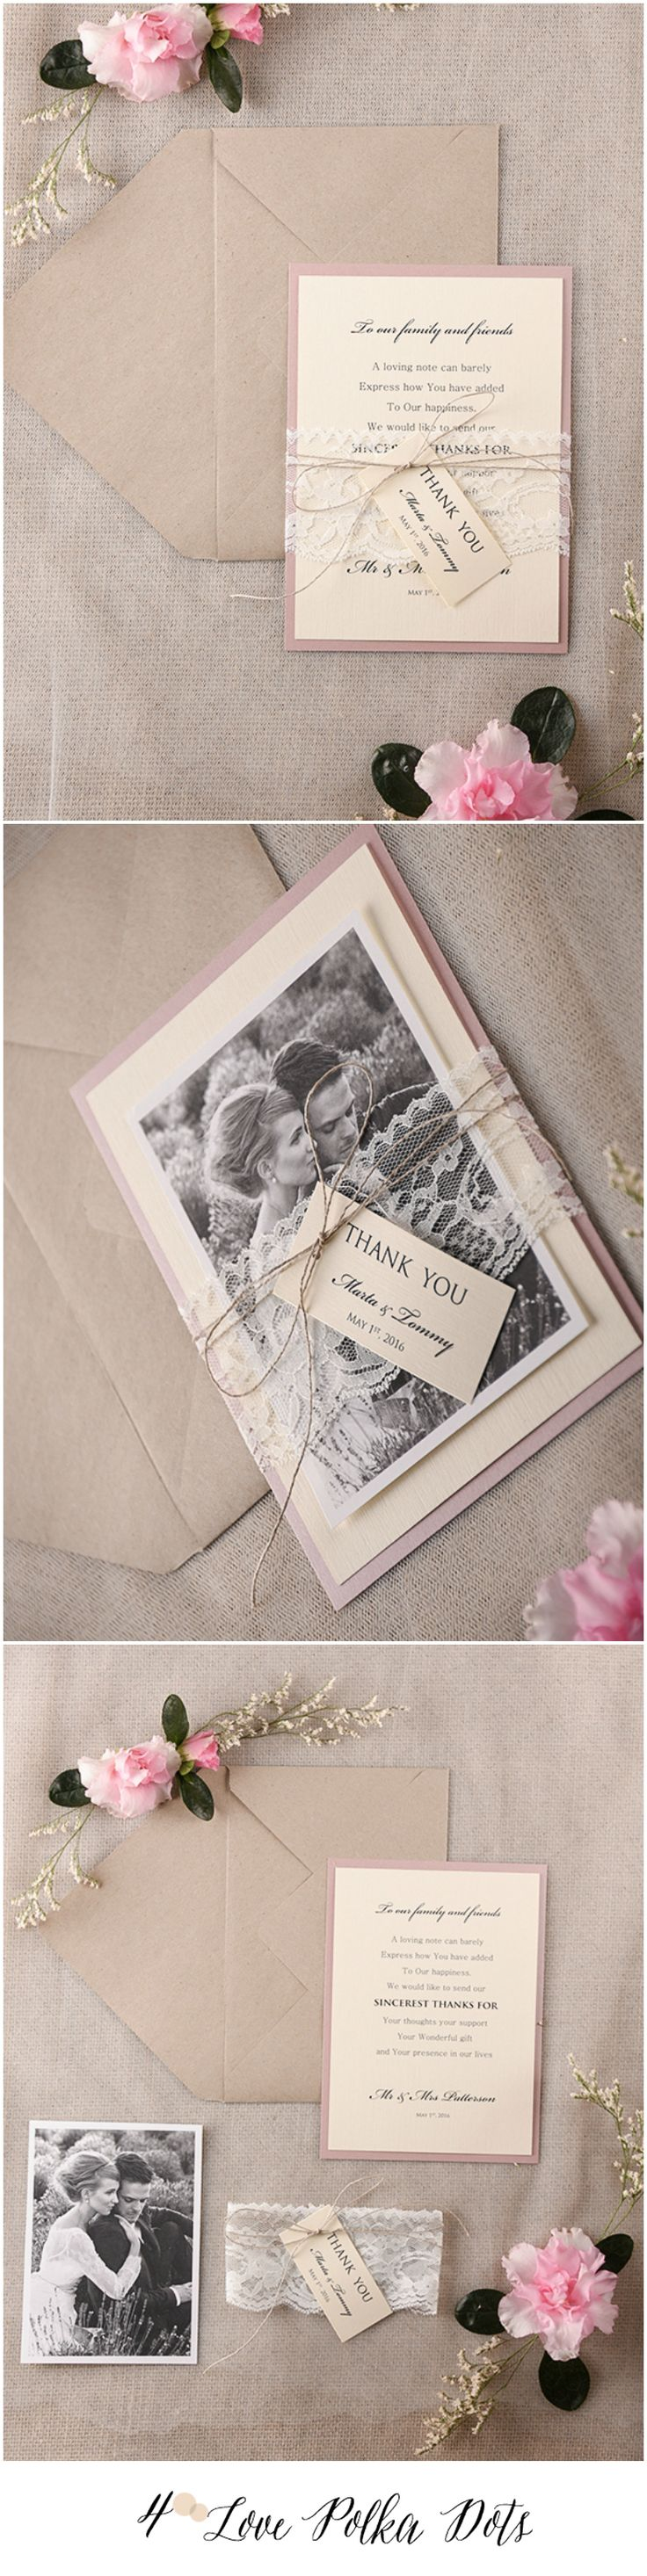 personalized wedding thank you notes%0A Pink Wedding Thank You card with your photo  pink  lace  romantic  wedding